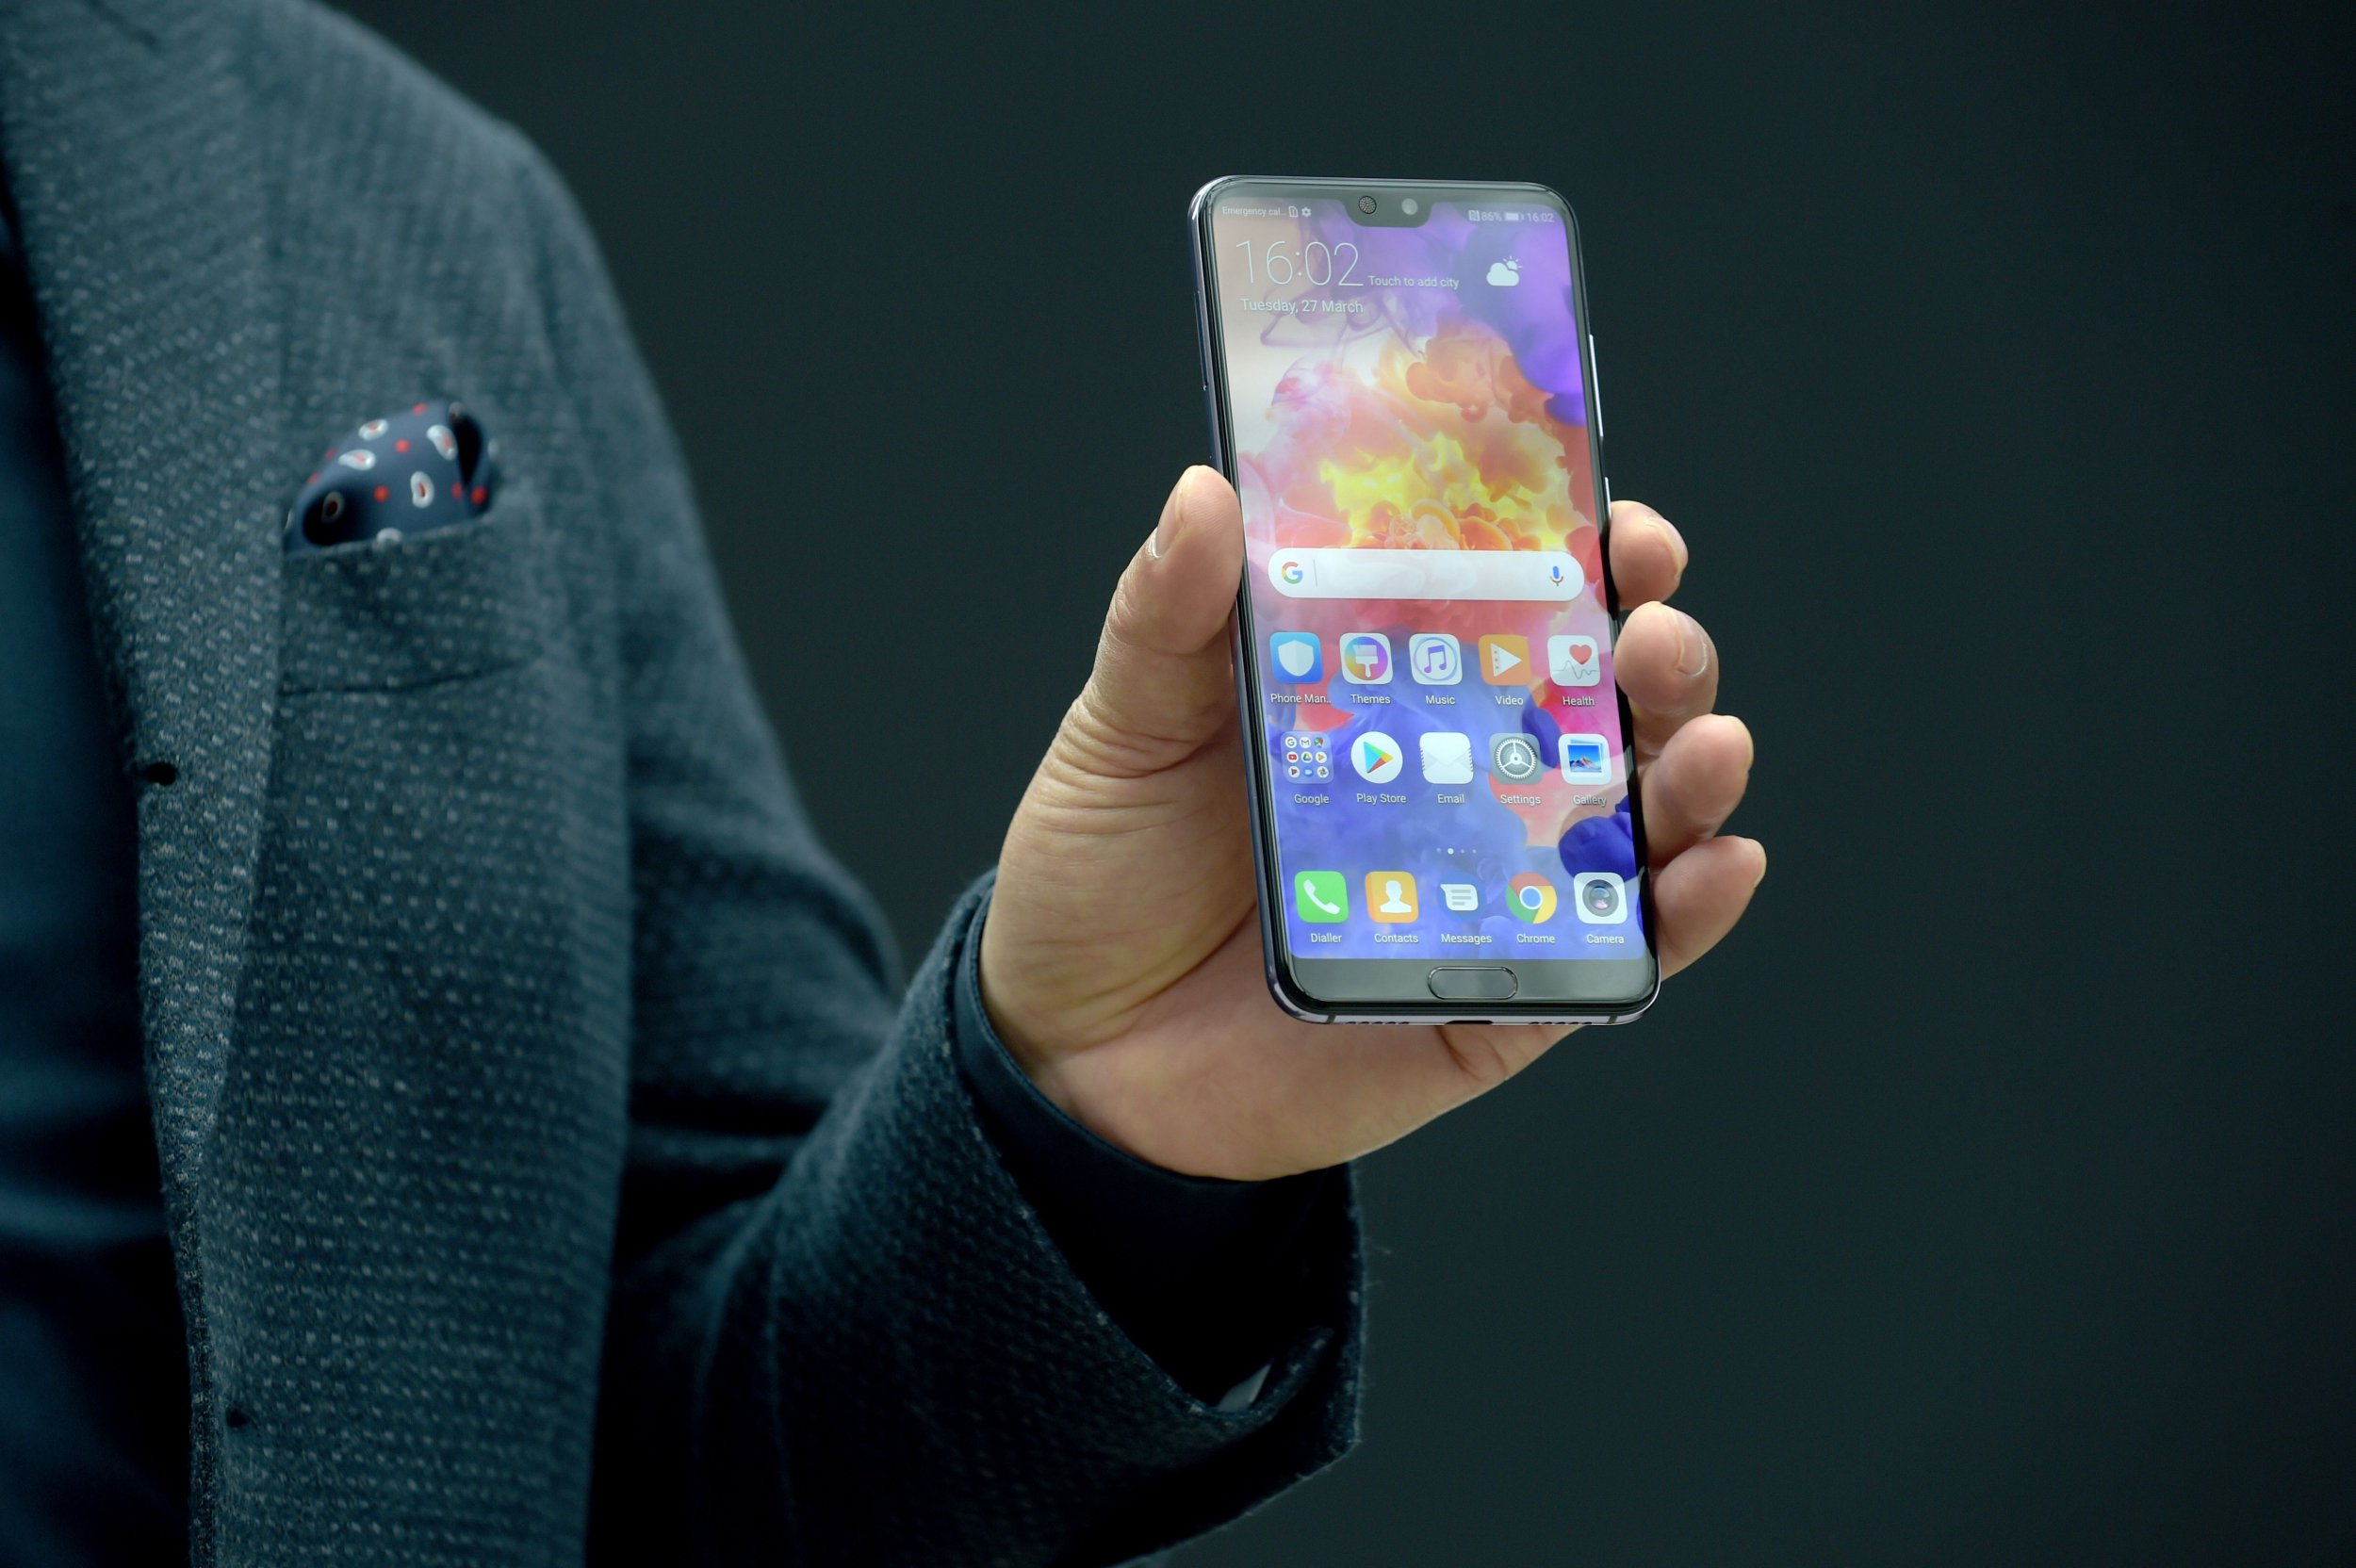 Telecom equipment company Huawei CEO Richard Yu presents the new P20 smartphone in Paris on March 27, 2018. / AFP PHOTO / ERIC PIERMONTERIC PIERMONT/AFP/Getty Images